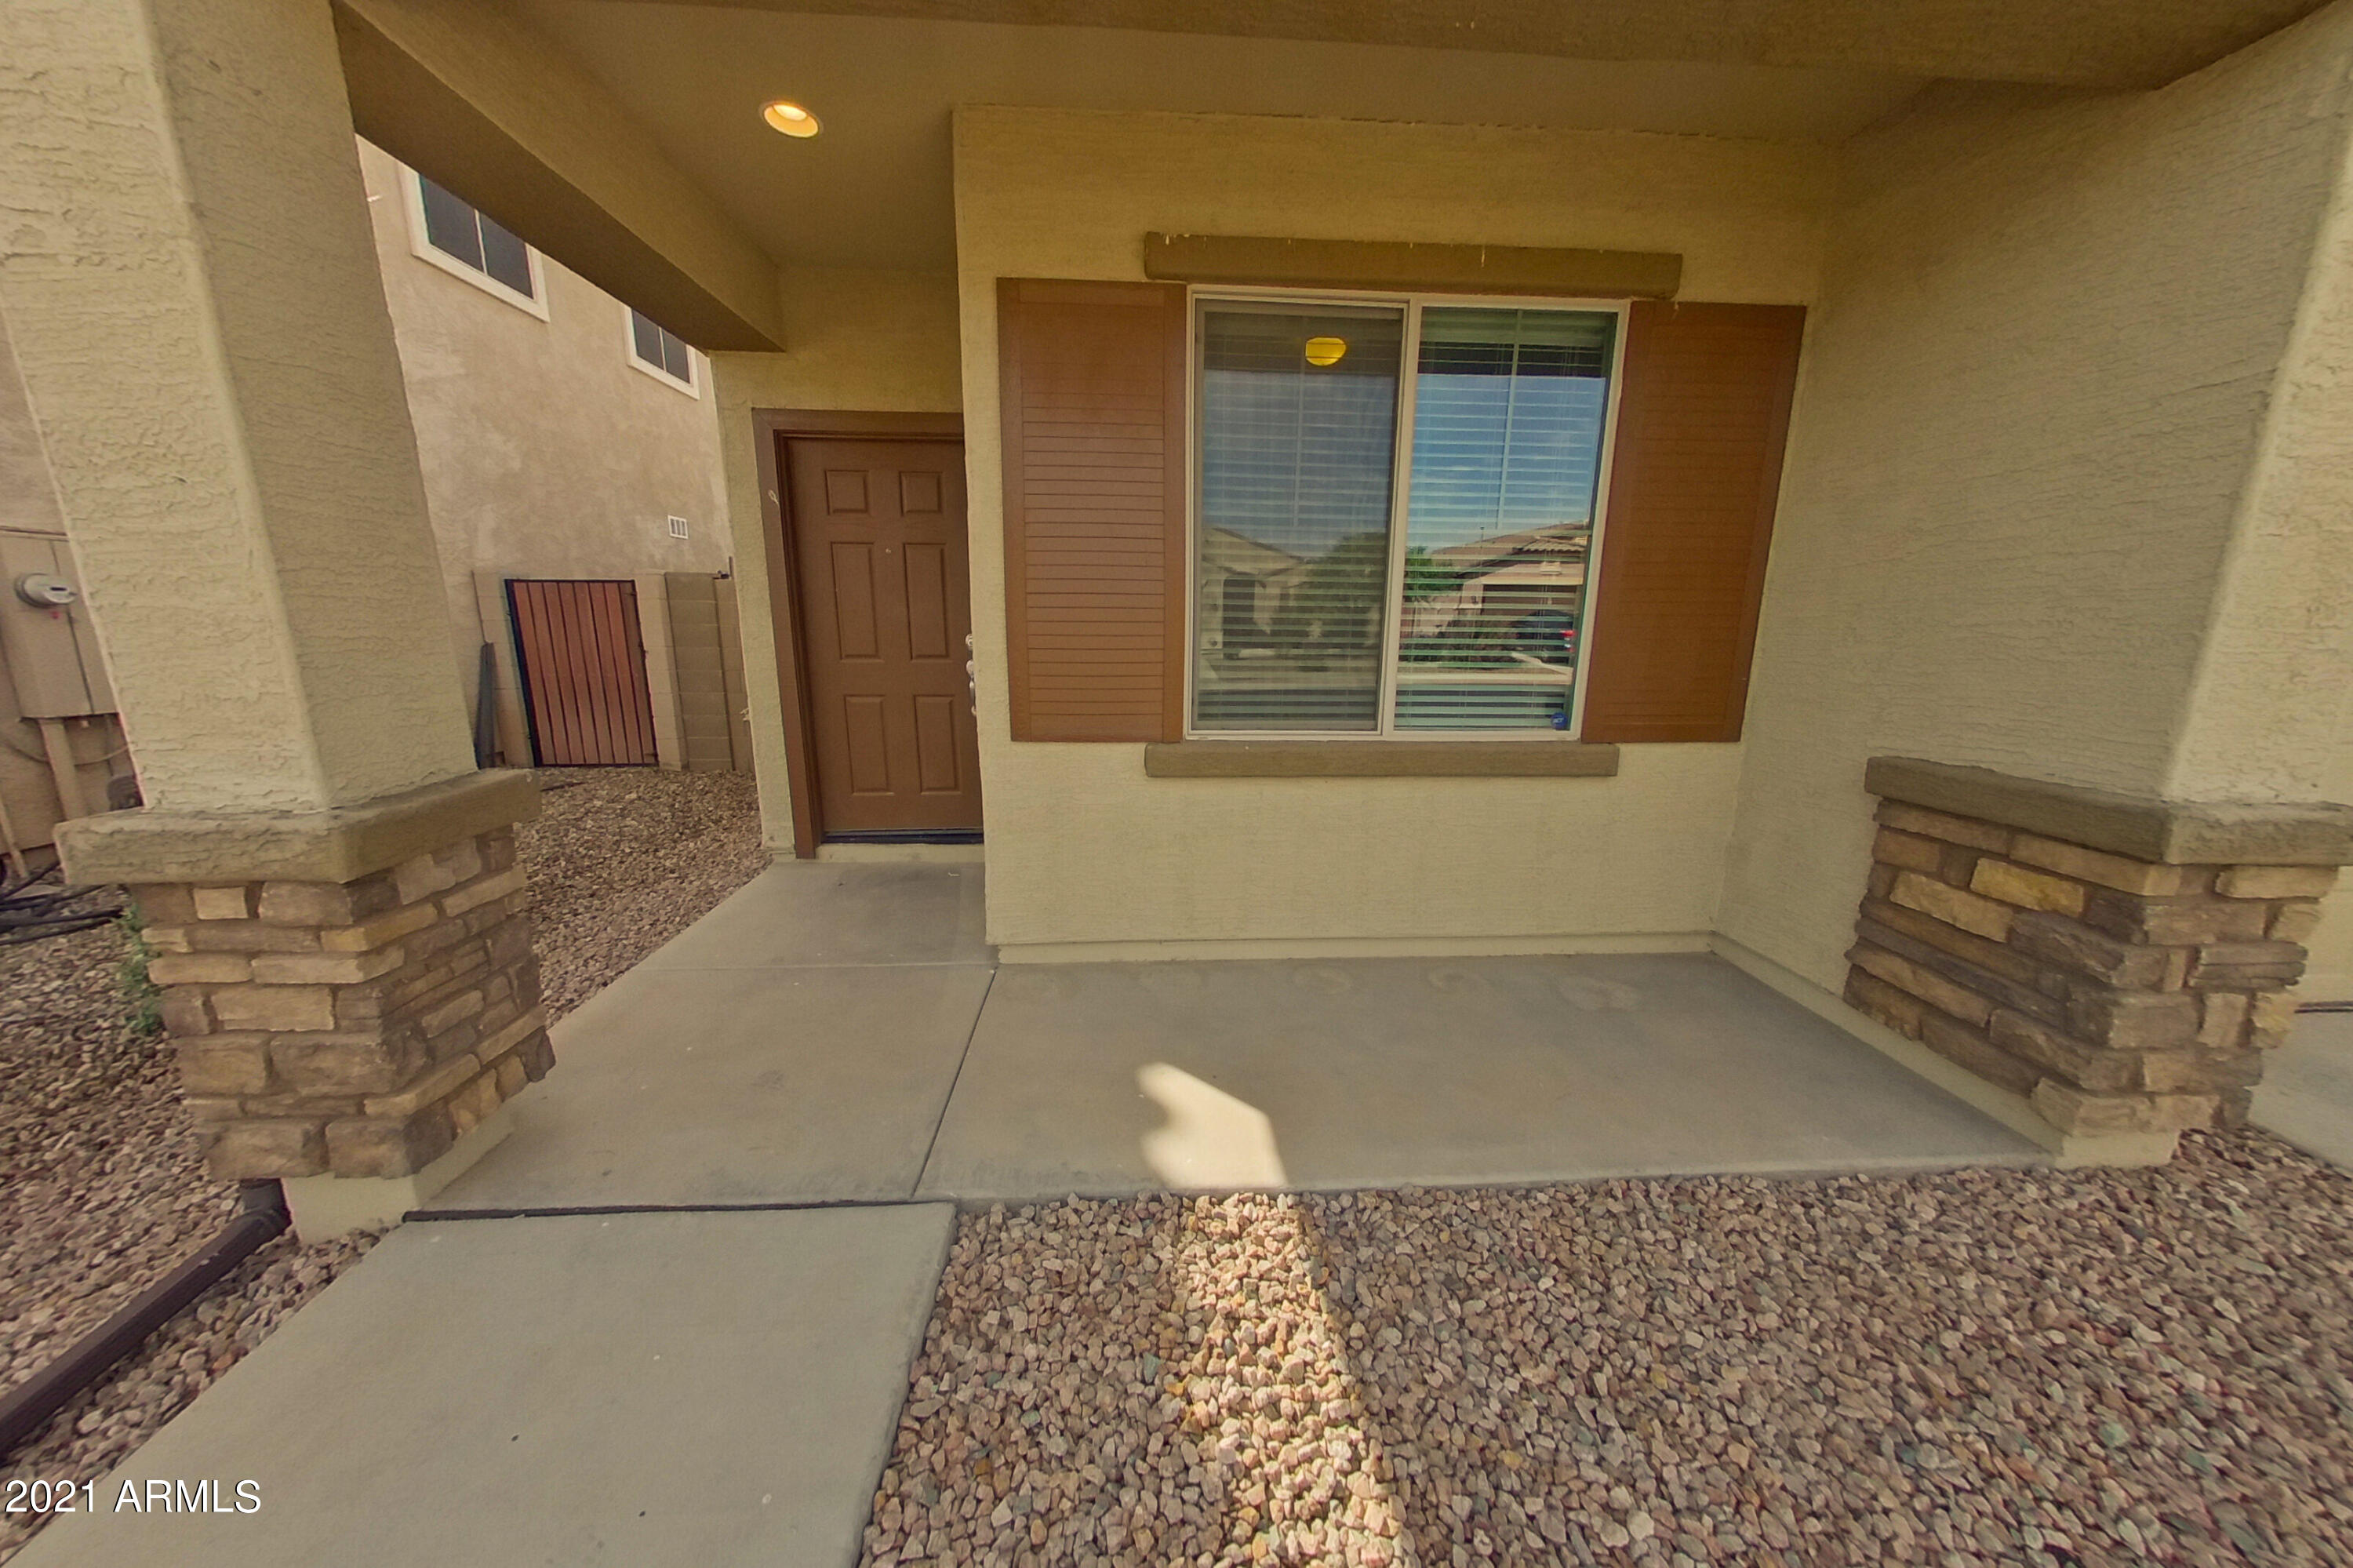 38105 W ISABELLA Lane, Maricopa, AZ 85138, 3 Bedrooms Bedrooms, ,Residential,For Sale,38105 W ISABELLA Lane,6308370